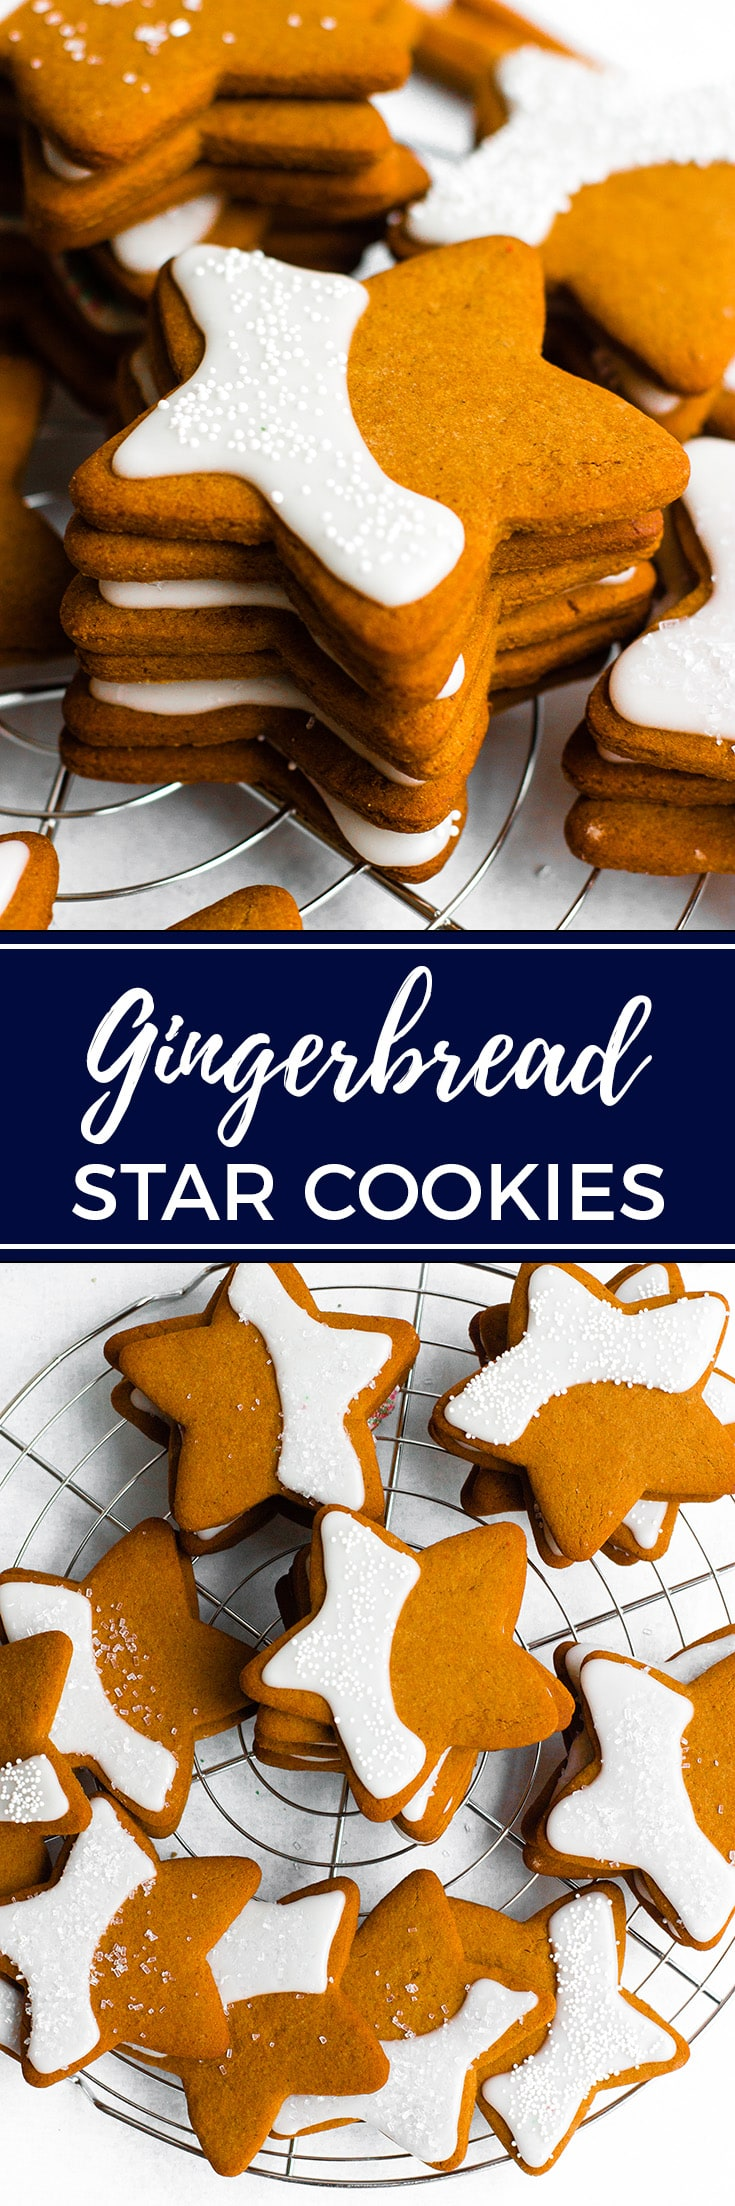 Gingerbread star cookies | A Christmas tradition with slightly crisp edges, chewy centers, and the warm flavors of molasses, brown sugar, and spices. #christmascookies #gingerbread